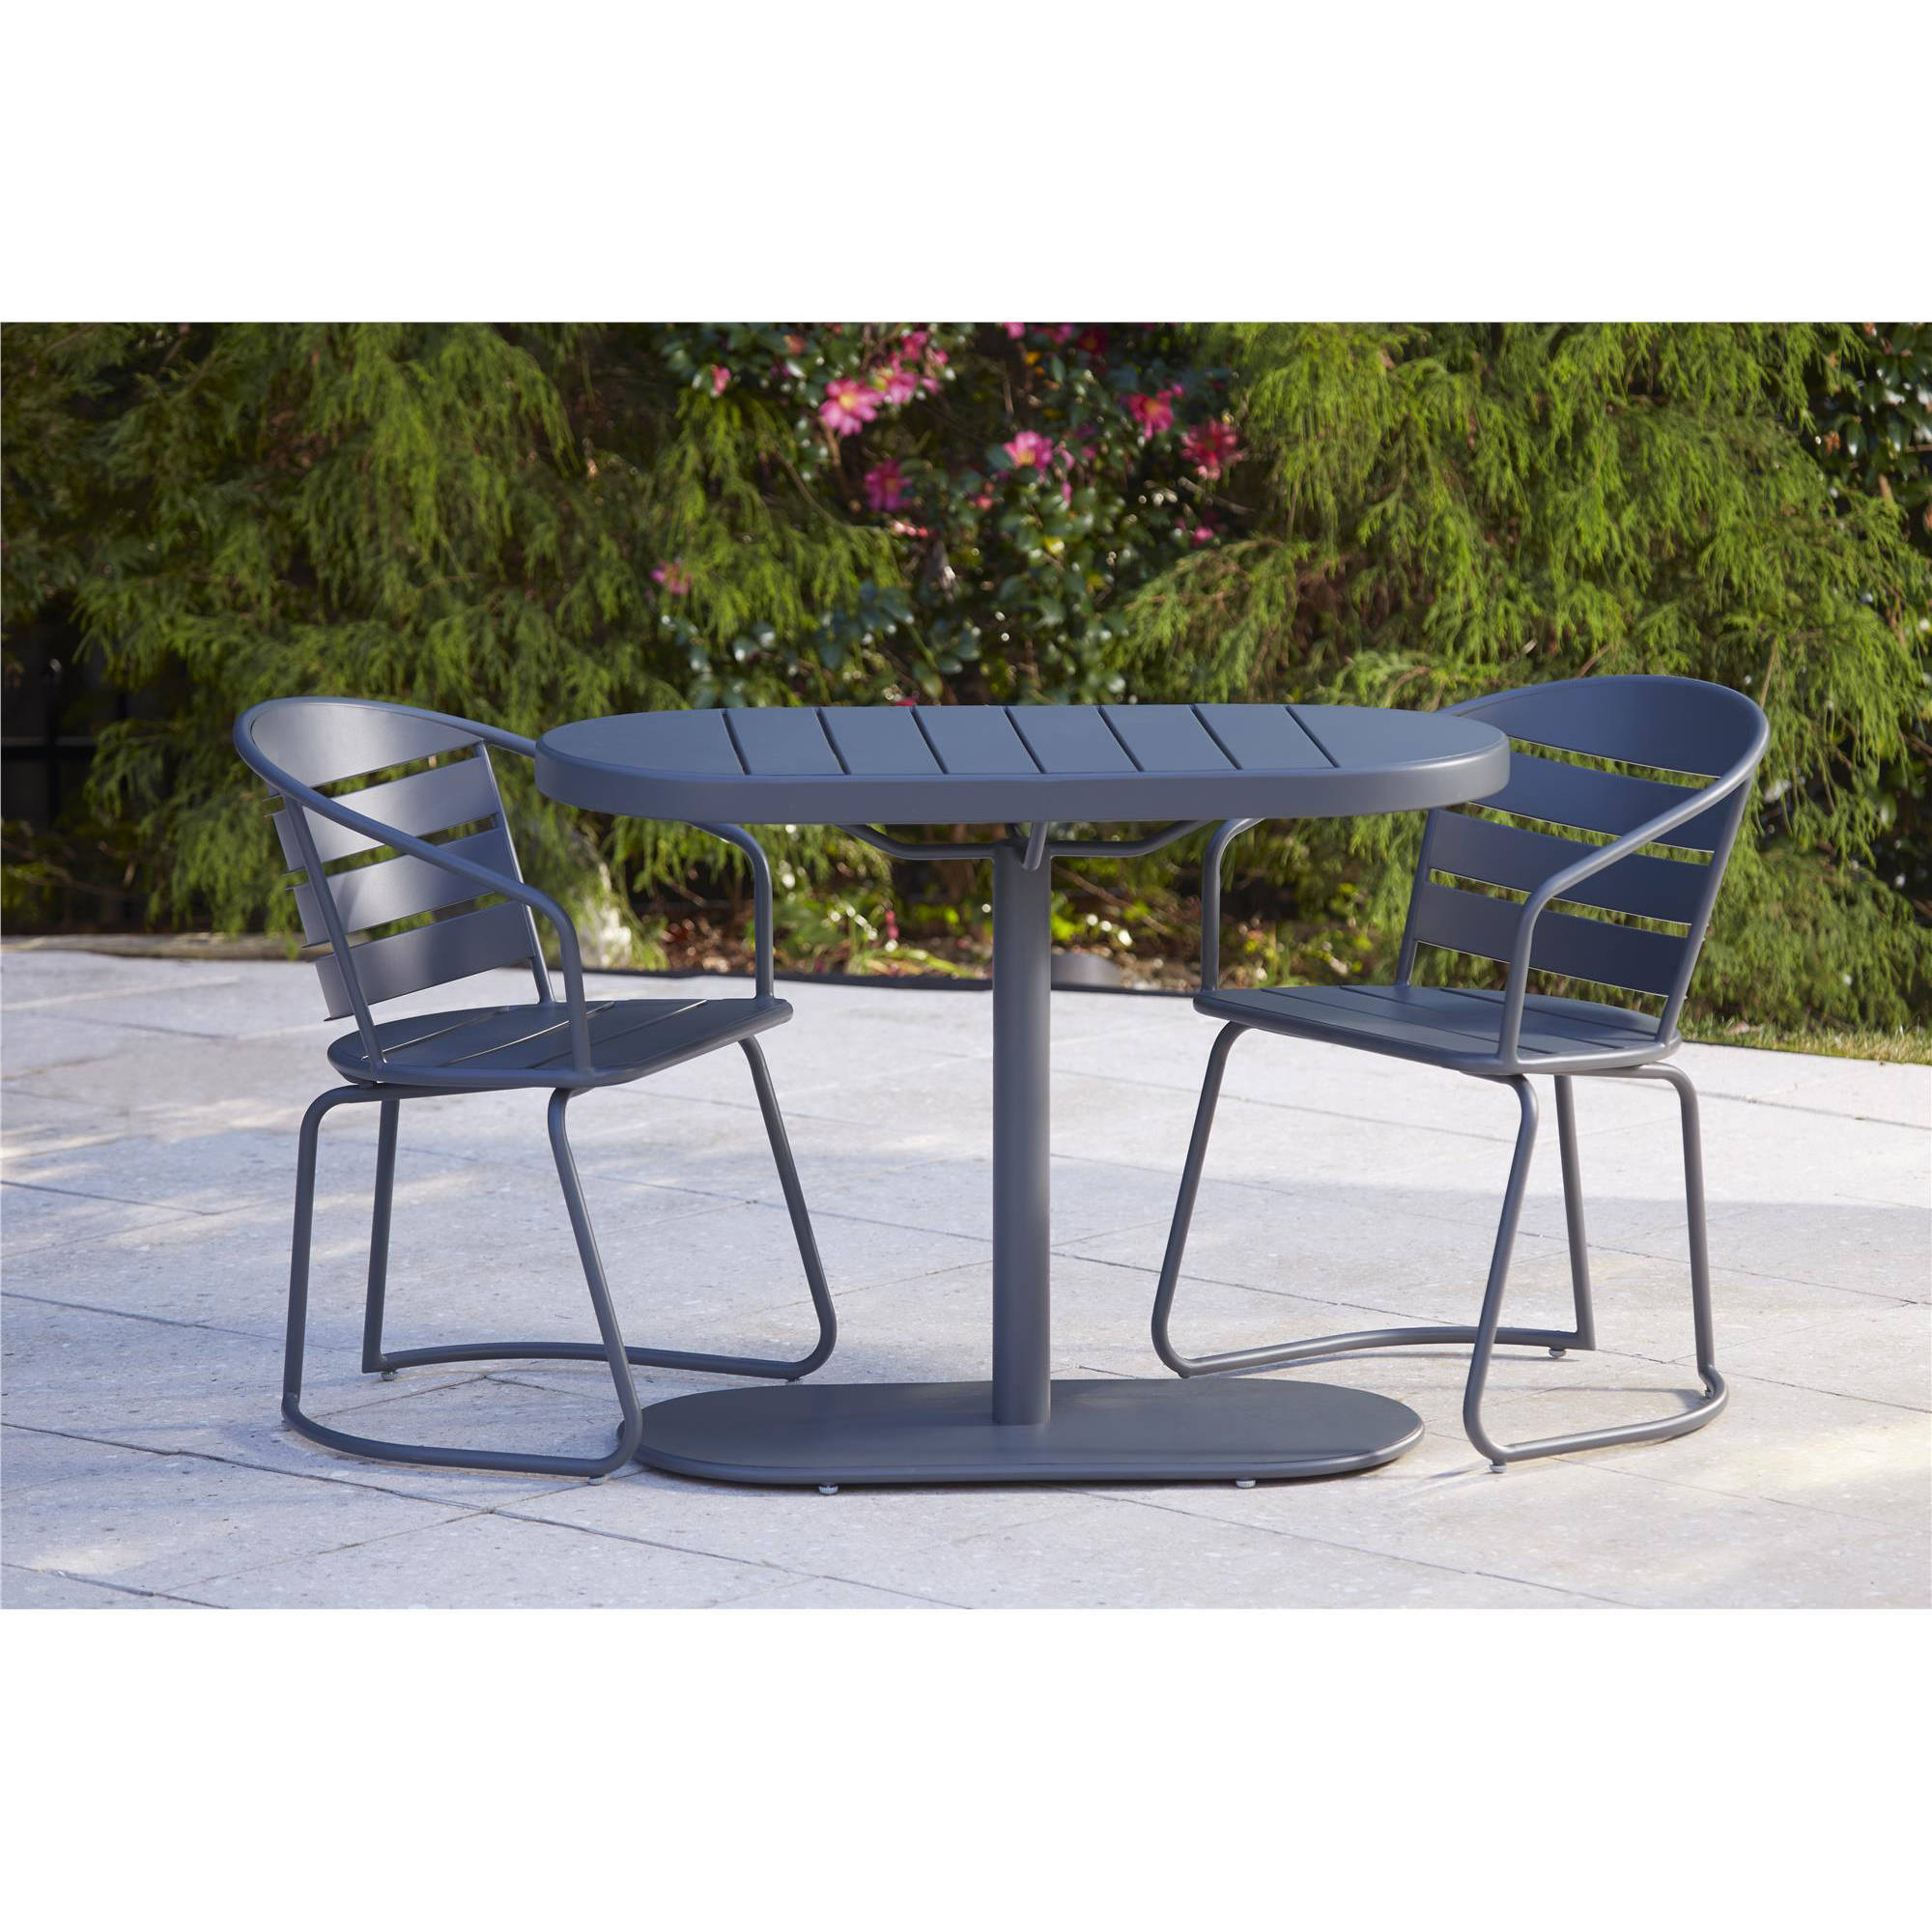 Cosco Outdoor 3-Piece Metro Retro Nesting Bistro Steel Patio Furniture Set, Assembled